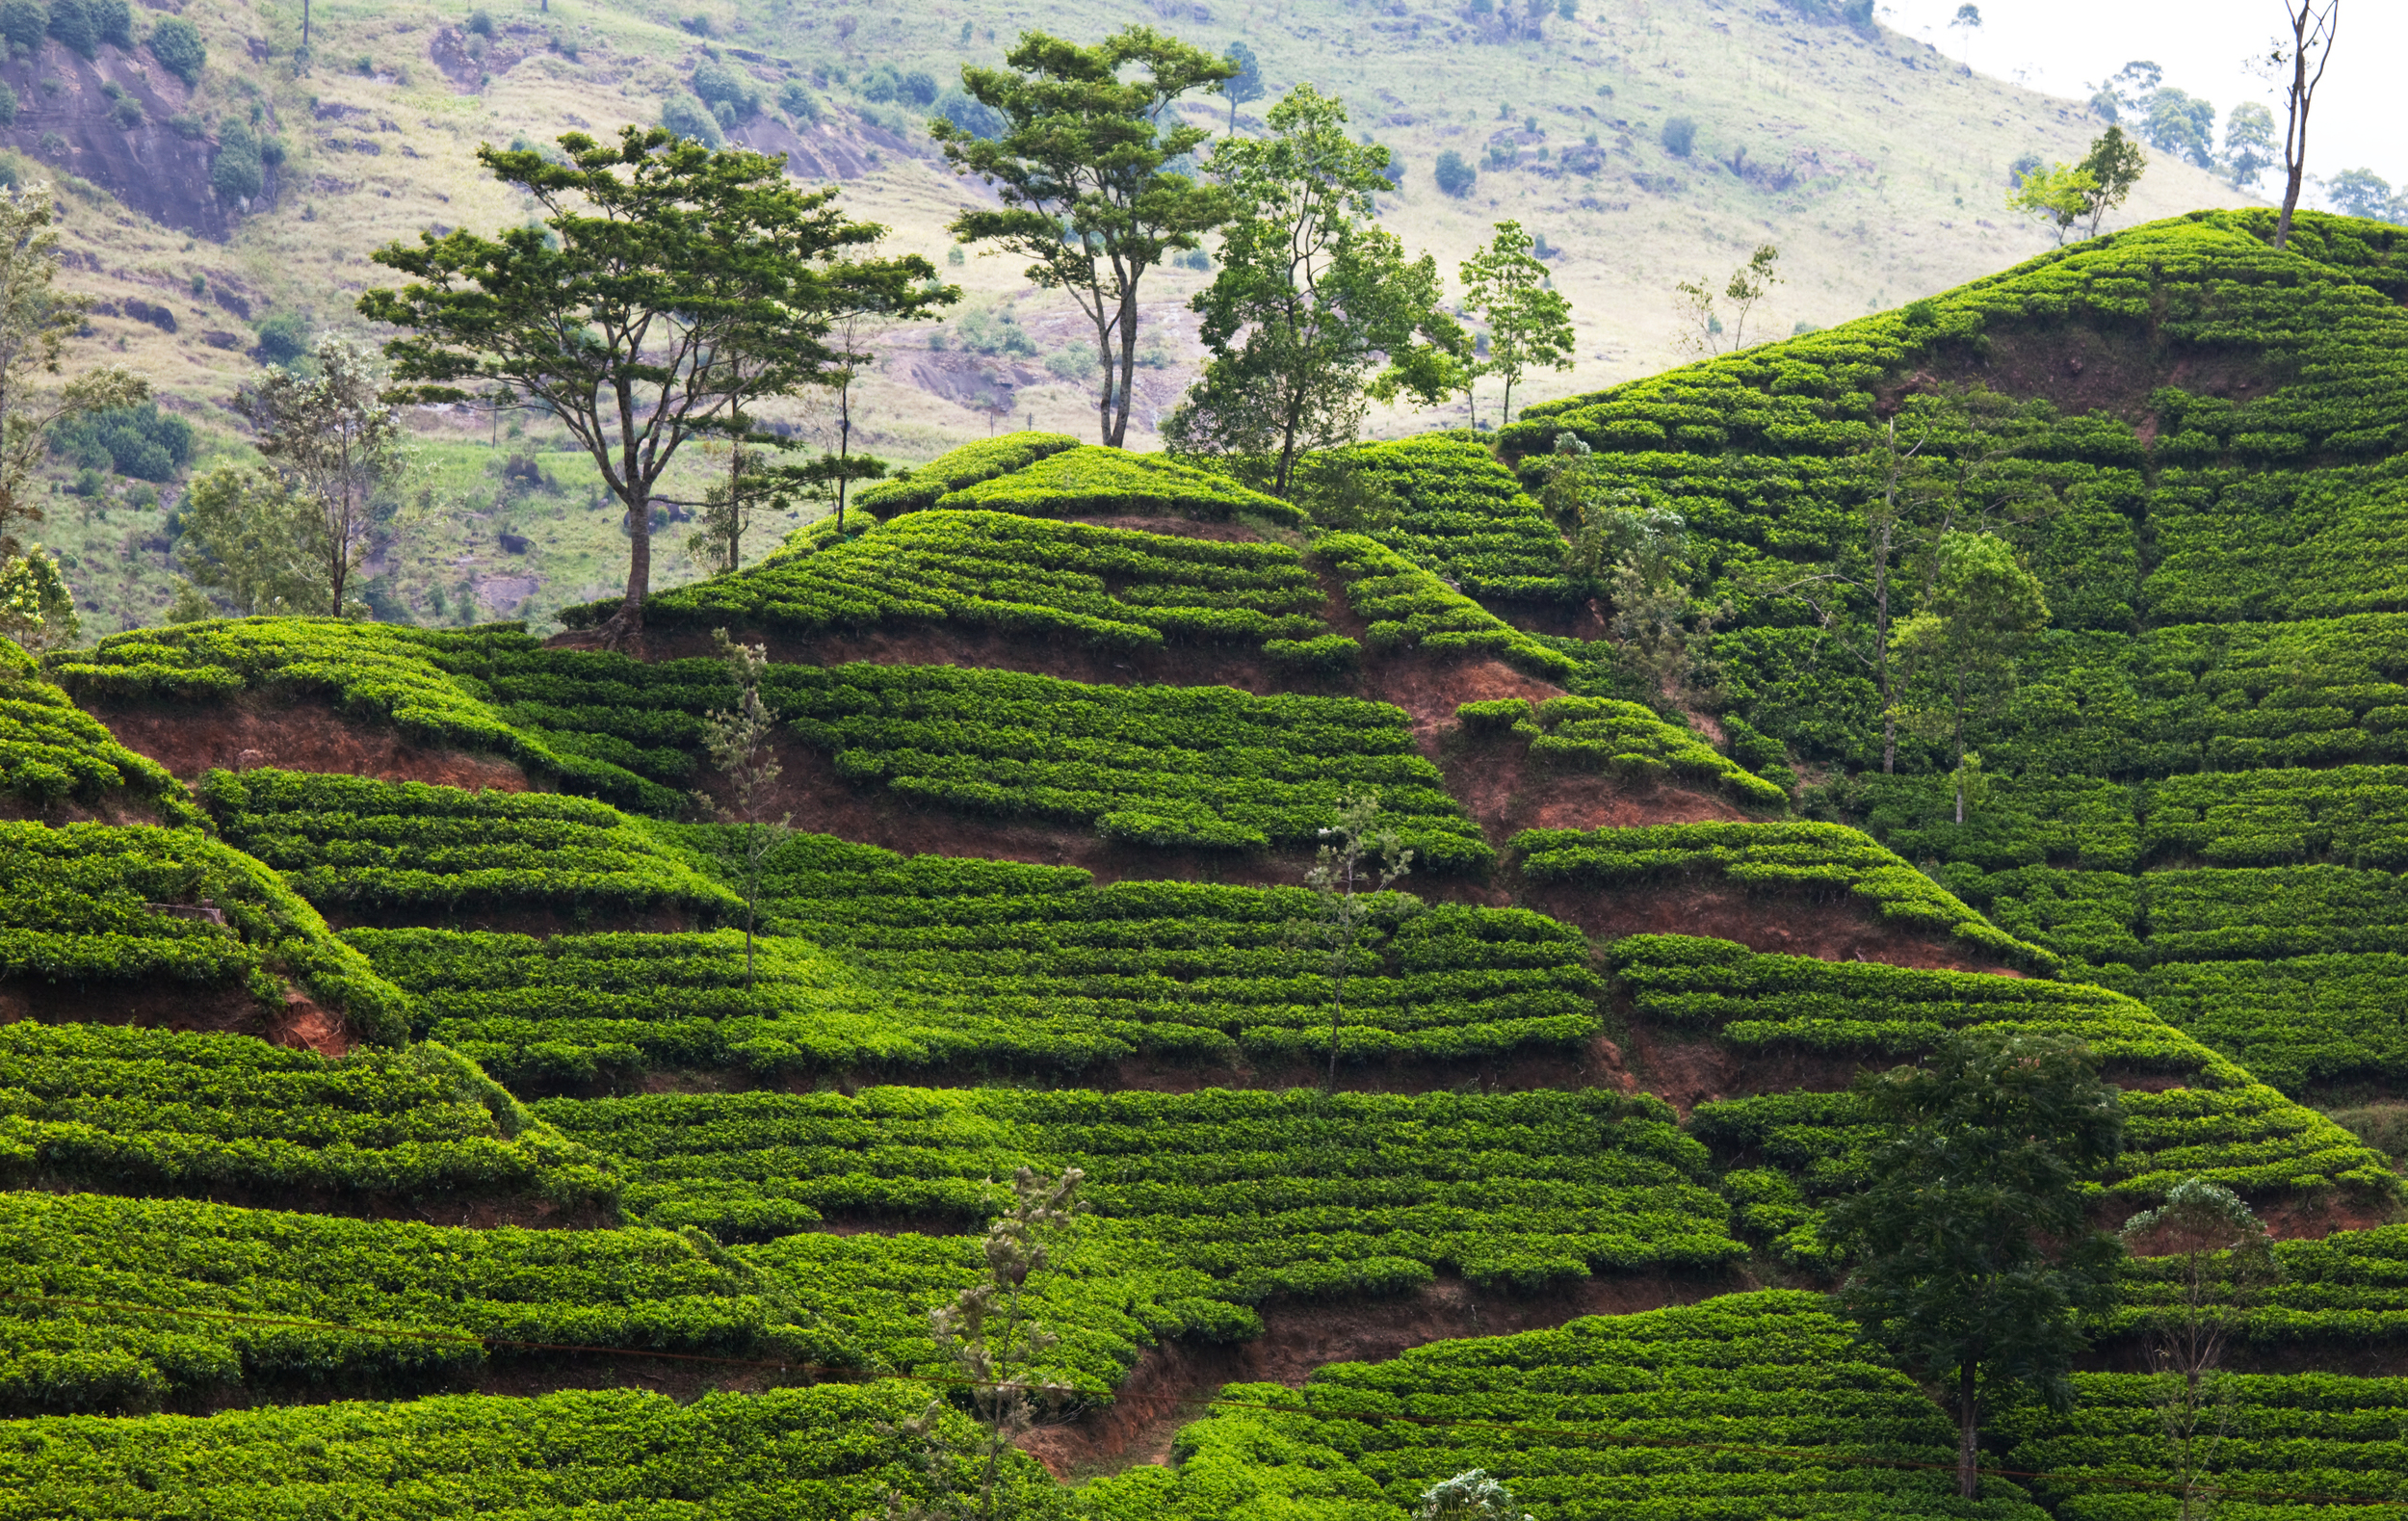 invite-to-paradise-sri-lanka-holiday-honeymoon-tea-plantations-mountains-18.jpg